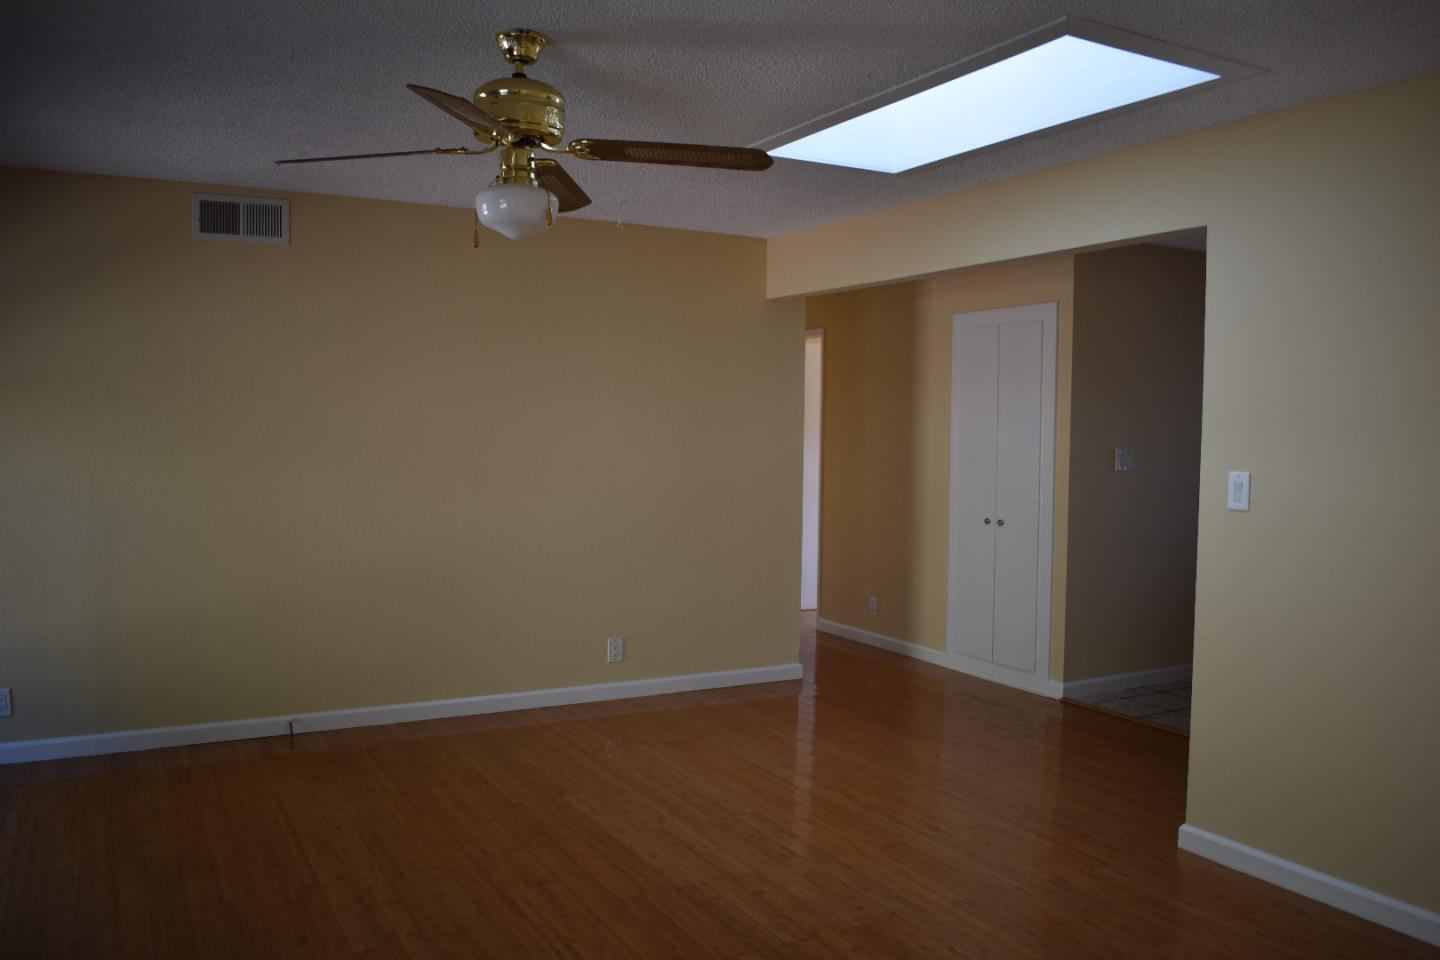 Additional photo for property listing at 1550 Kildare Way  Pinole, California 94564 United States